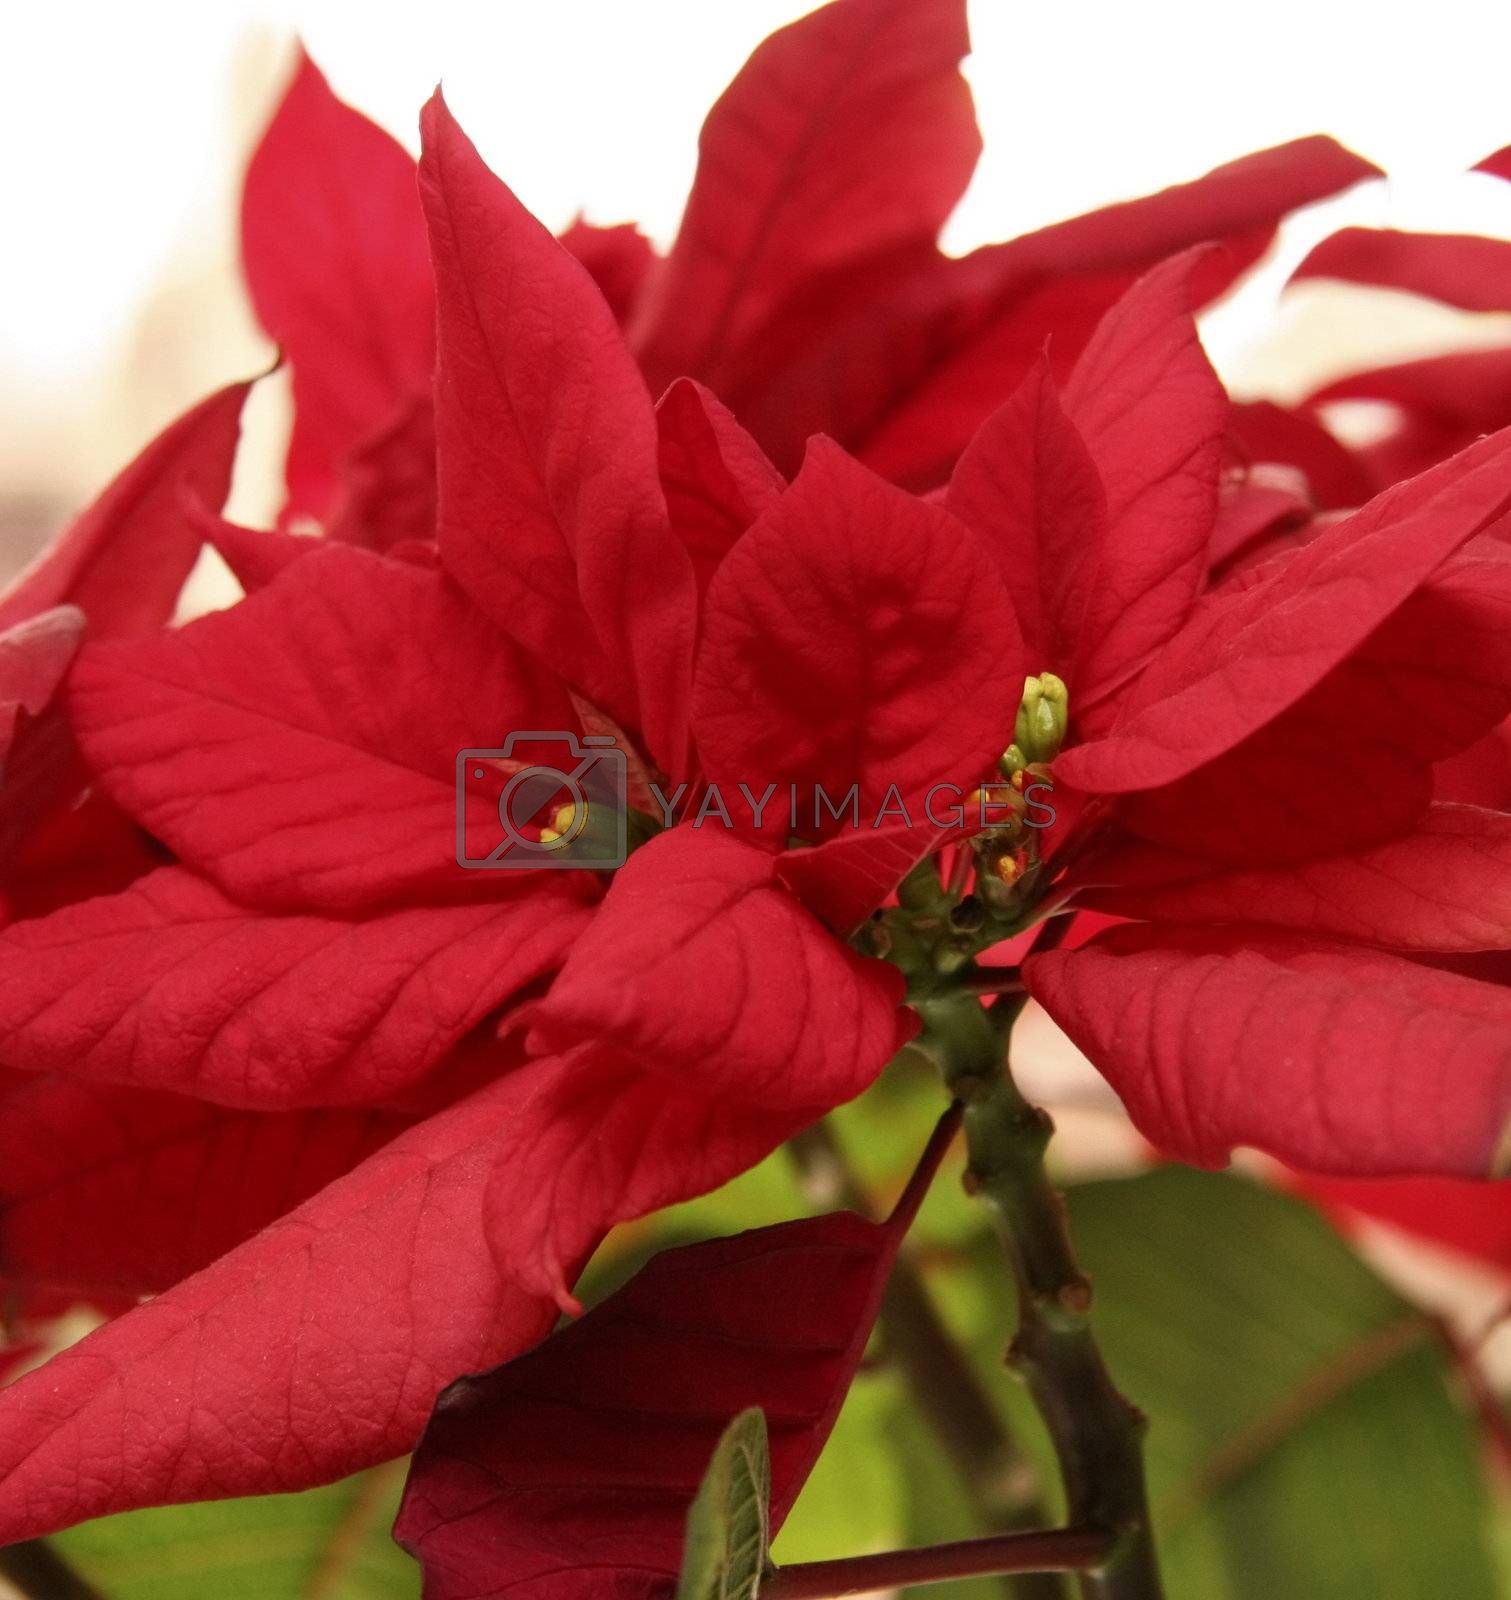 Royalty free image of red poinsettia by leafy